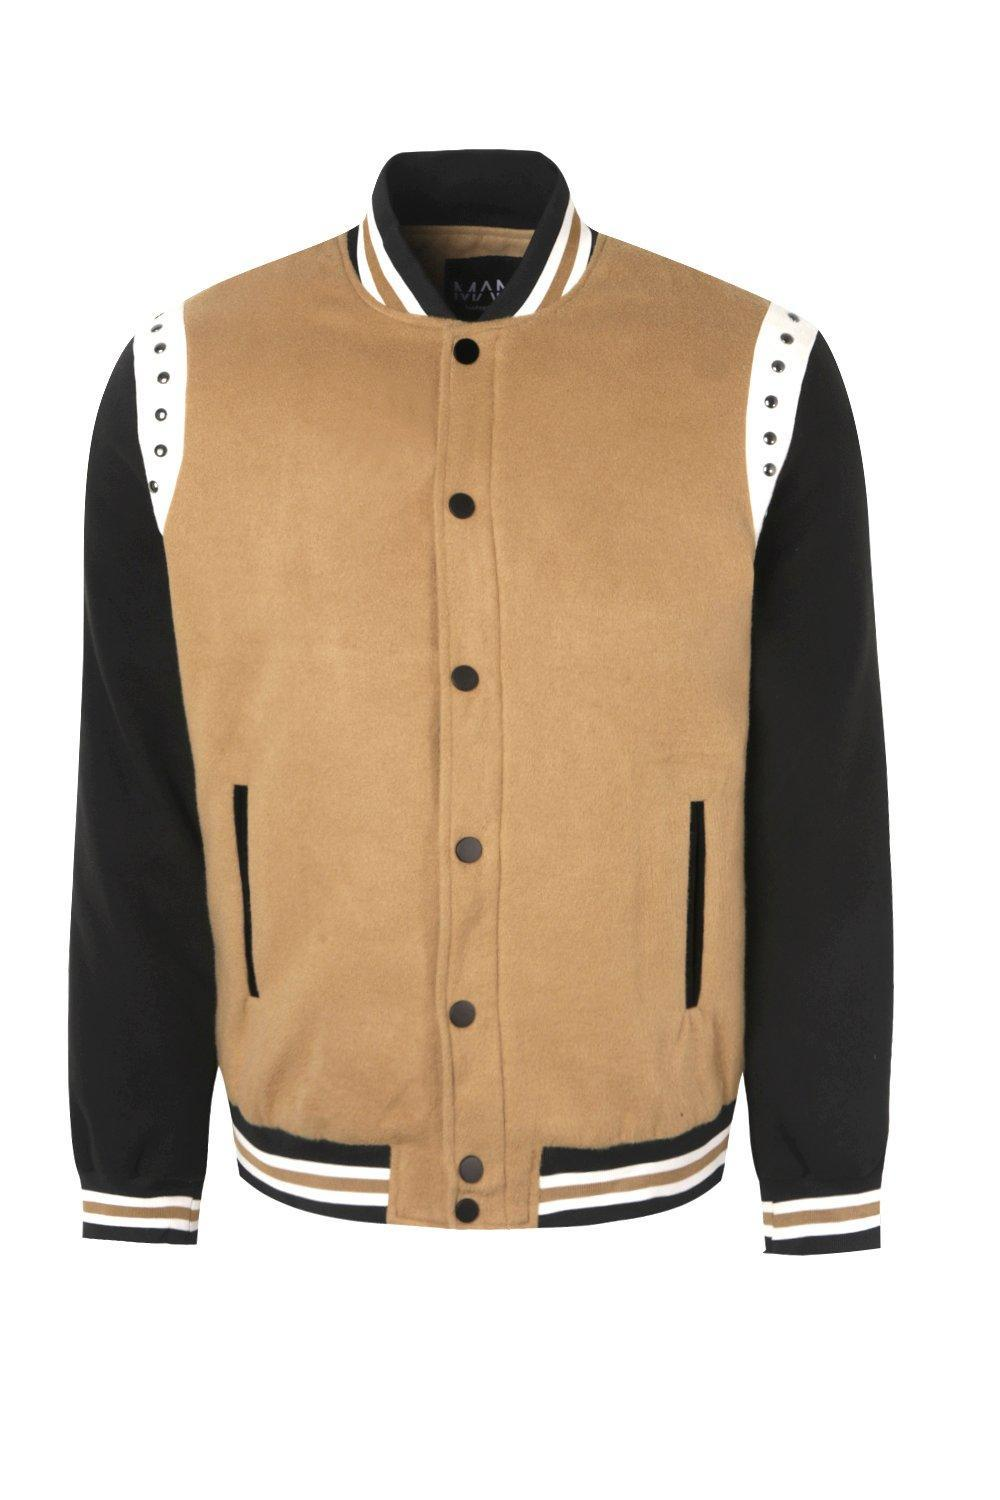 BoohooMAN Stud Detailing Wool Look Bomber Jacket in Tan (Brown) for Men